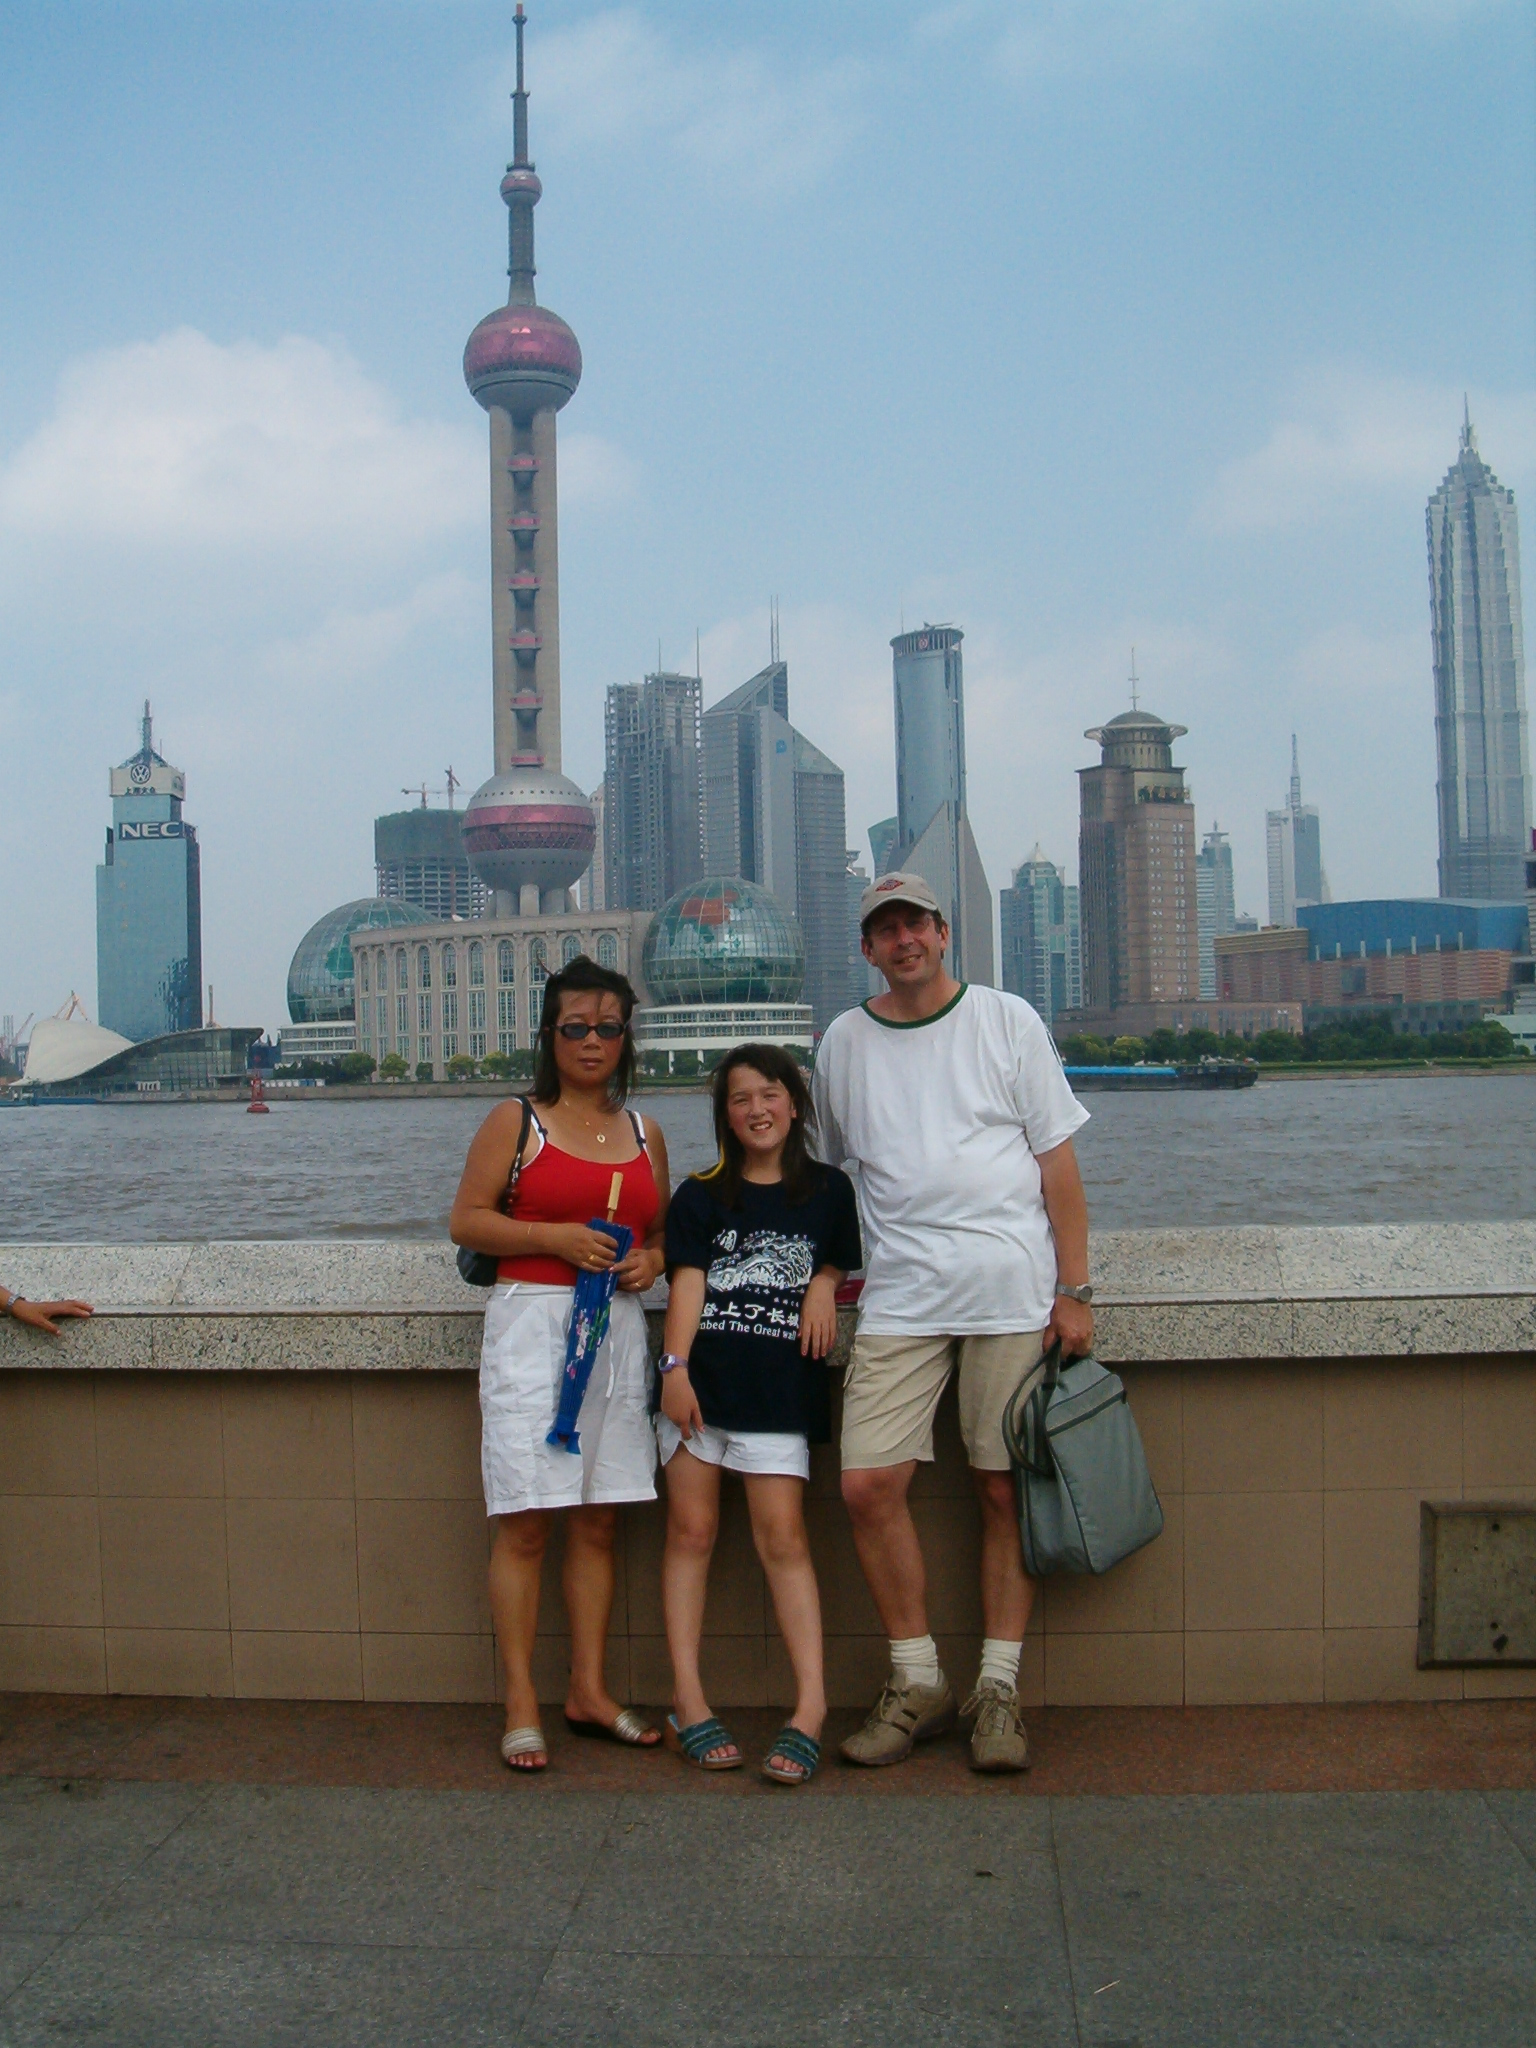 The Oriental Pearl TV Tower Shanghai China